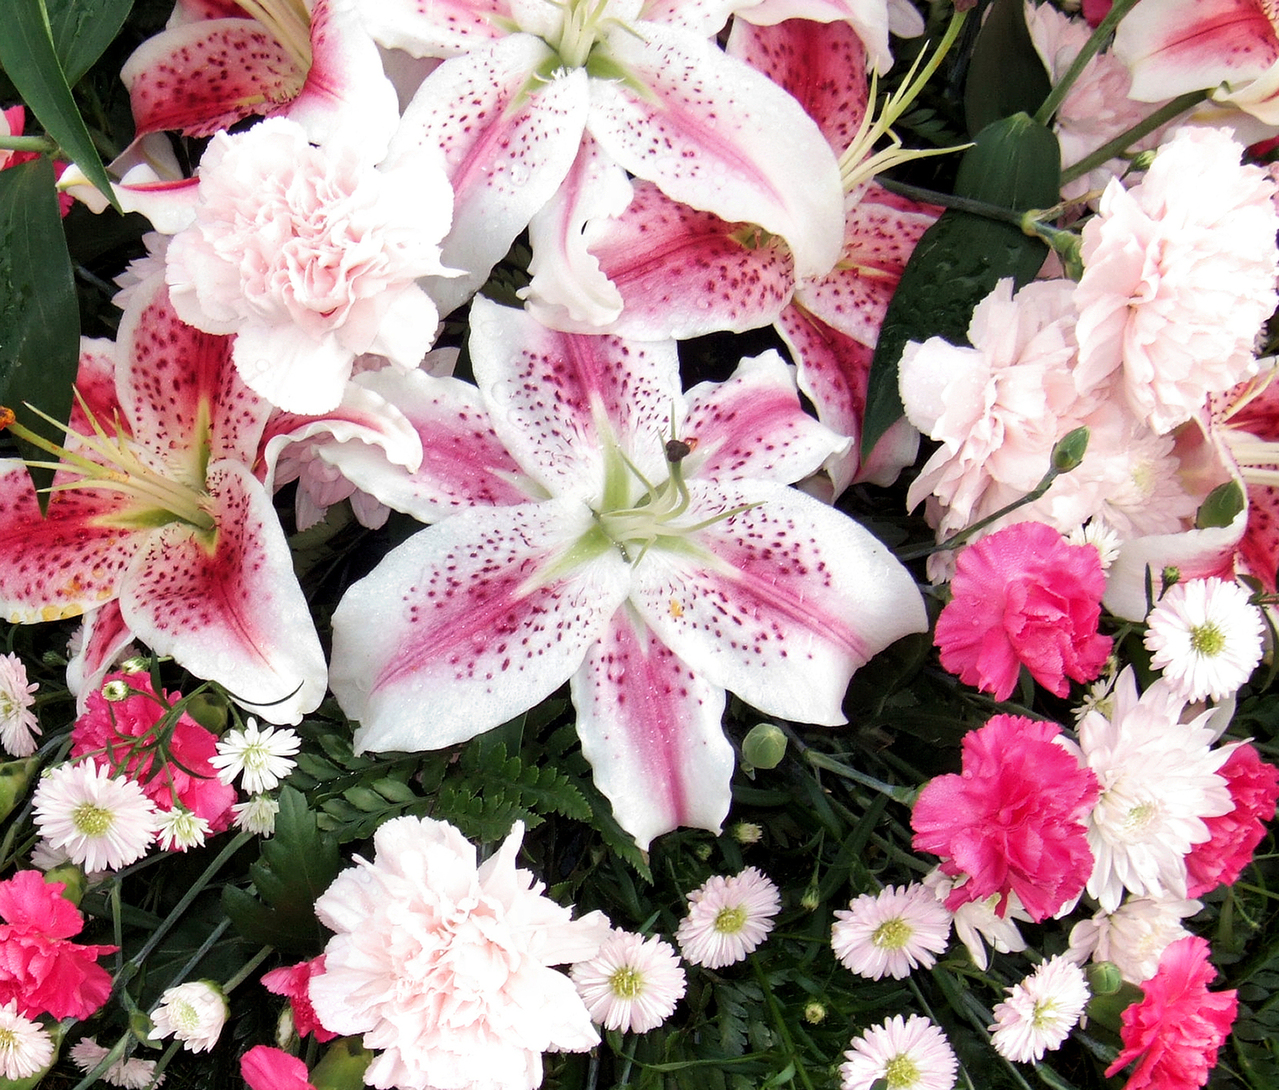 flowers available throughout the year